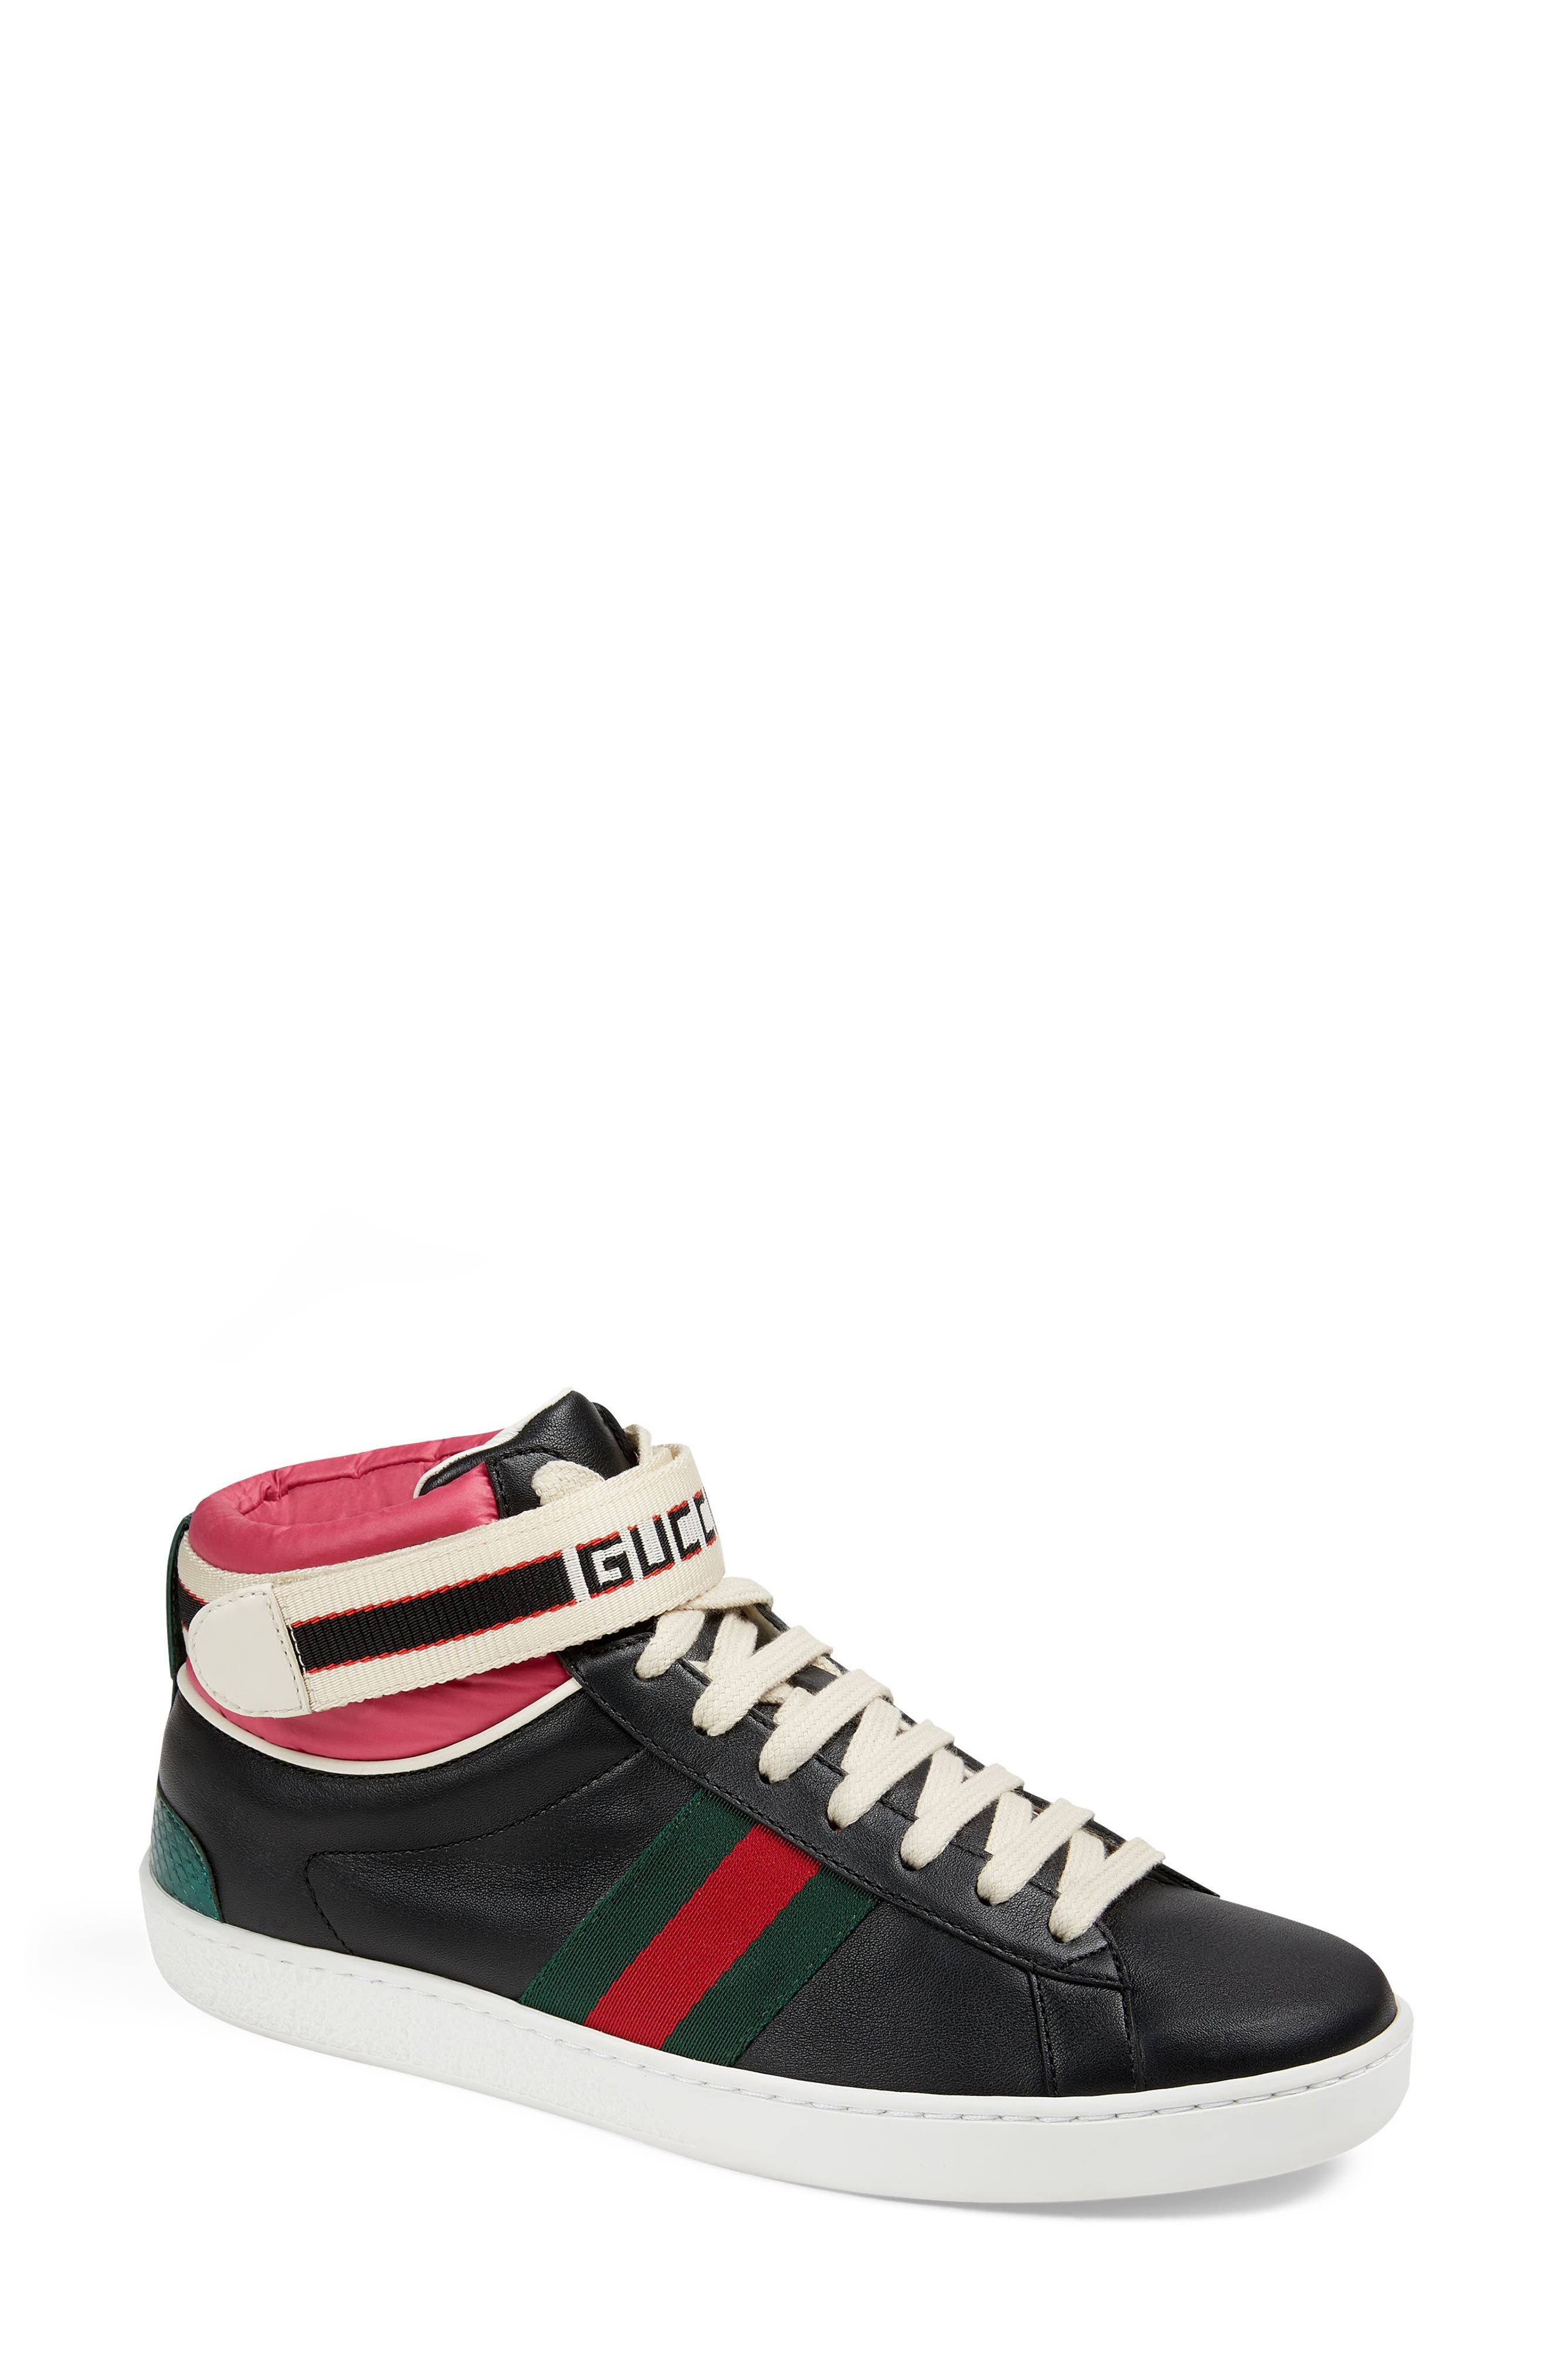 Gucci New Ace High Top Sneaker with Genuine Snakeskin Trim (Women)